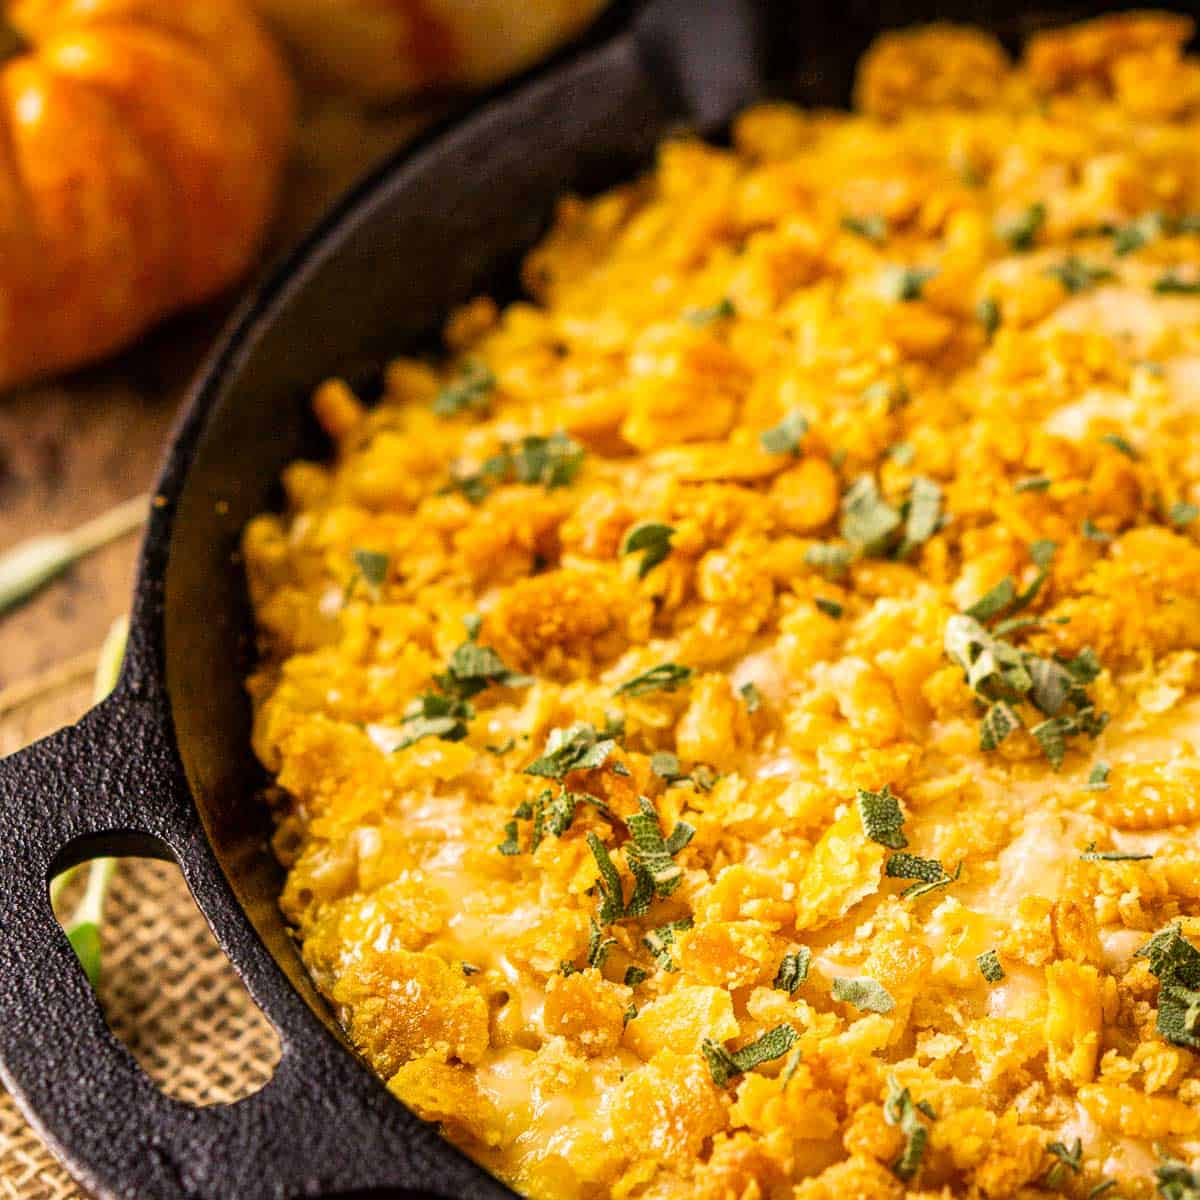 A cast-iron skillet filled with pumpkin mac and cheese on burlap with sage next to it.